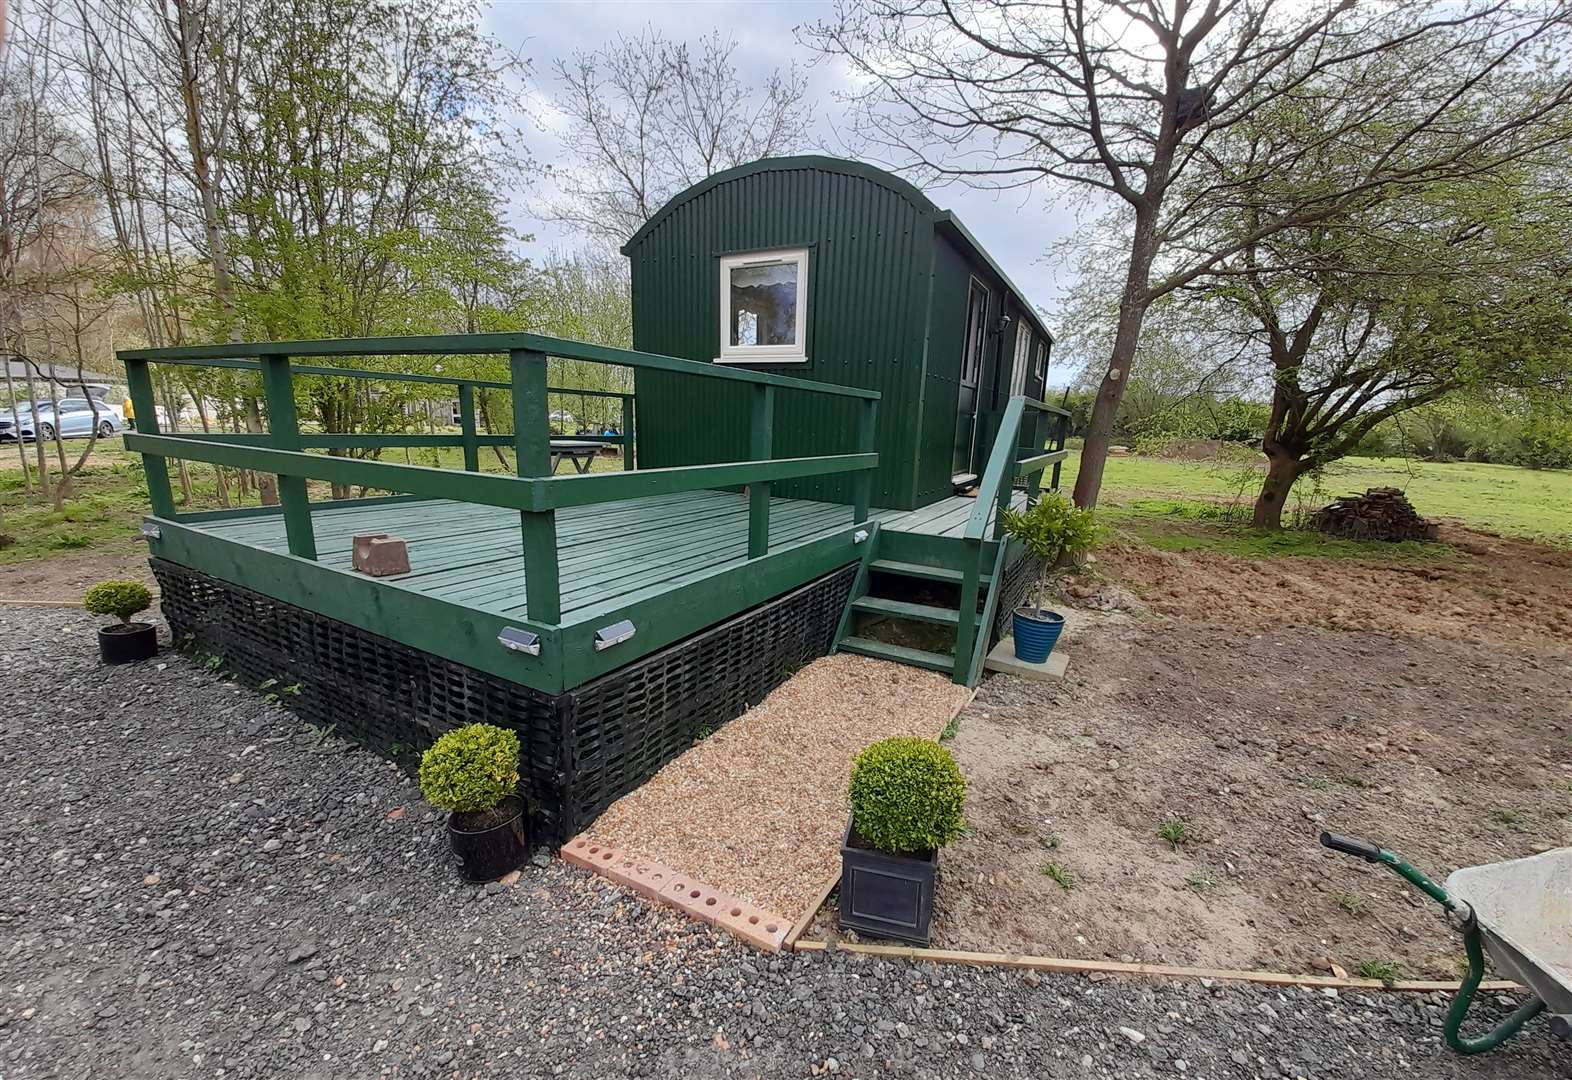 Shepherds' huts offer class accommodation